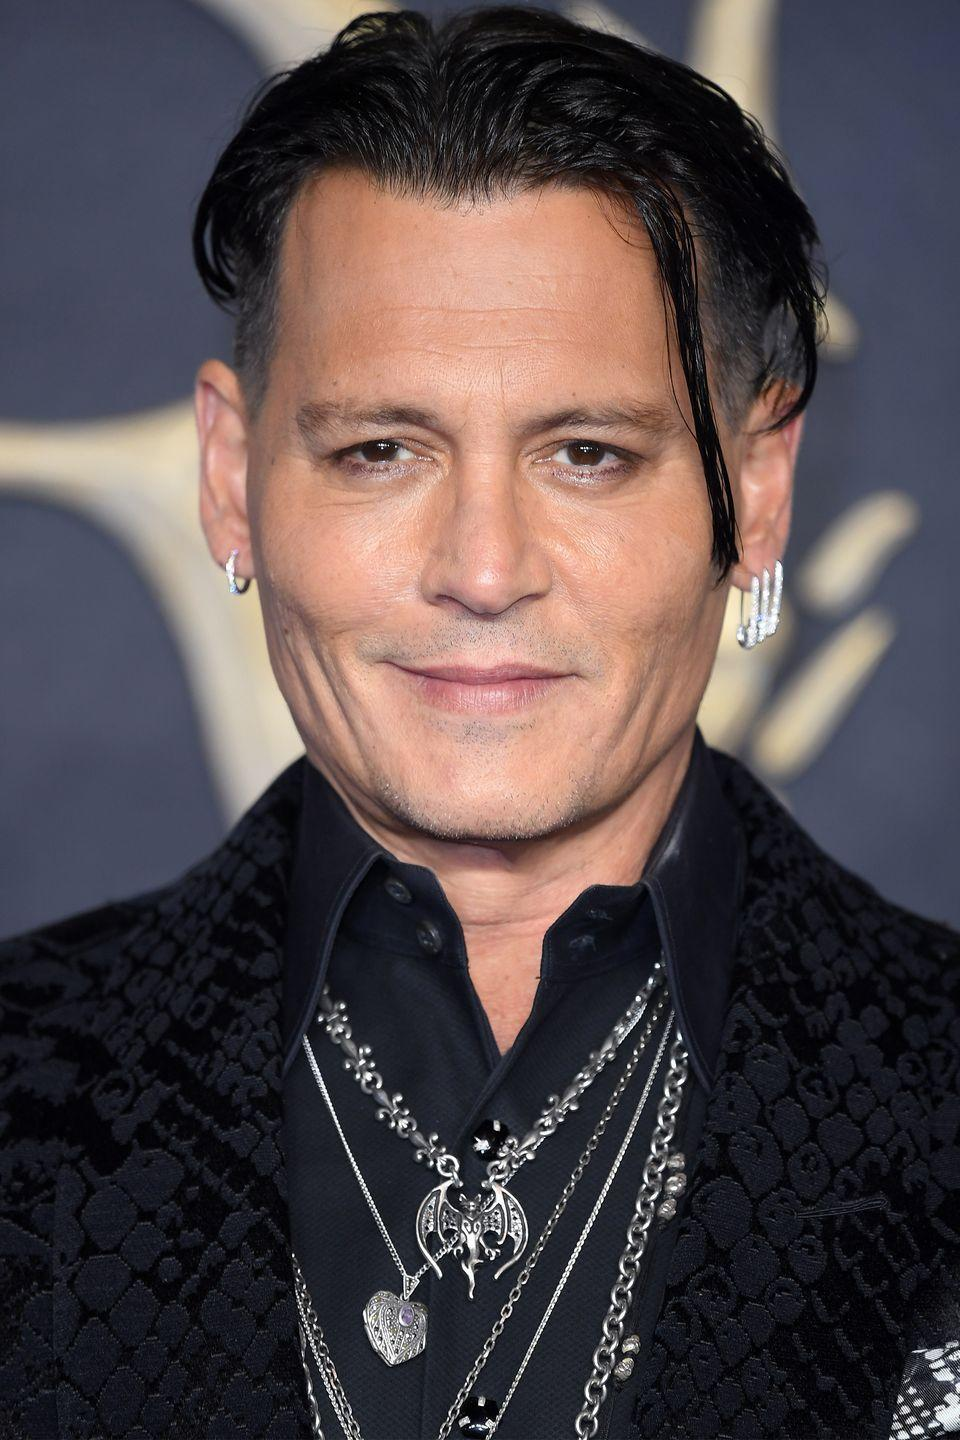 """<p>Depp <a href=""""https://www.cbsnews.com/pictures/actors-who-dropped-out-of-school/"""" rel=""""nofollow noopener"""" target=""""_blank"""" data-ylk=""""slk:dropped out"""" class=""""link rapid-noclick-resp"""">dropped out</a> of school when he was 15 to pursue a career as a rock star. Apparently, acting was his fallback plan.</p>"""